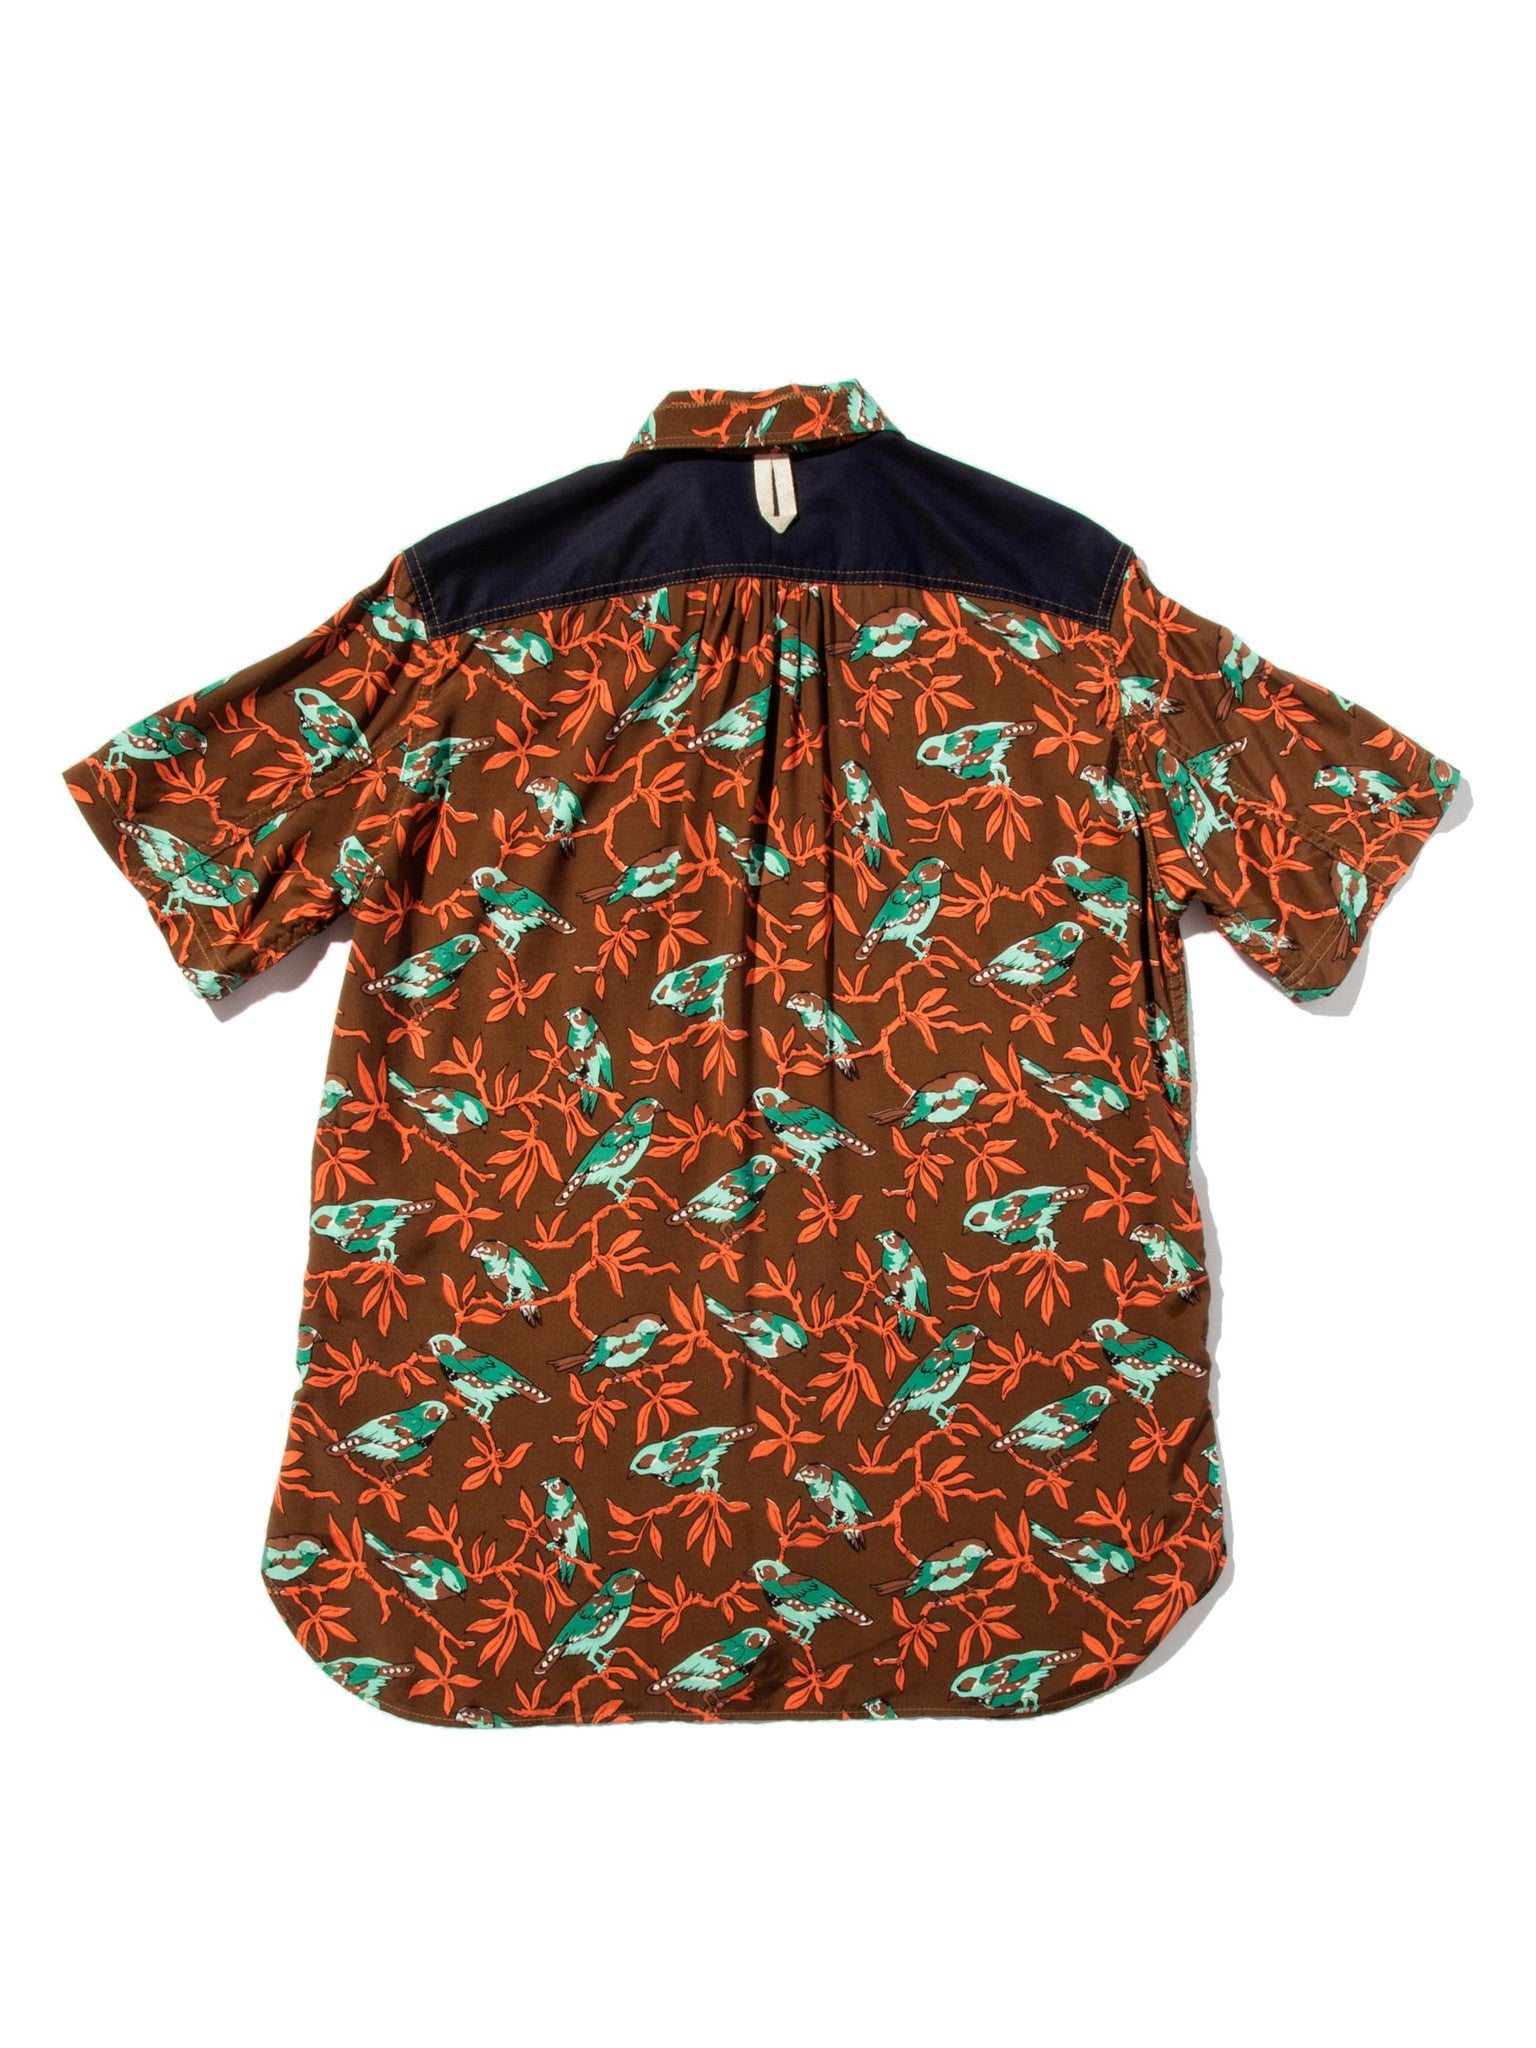 XL Printed Motif Shirt (Birds) 5